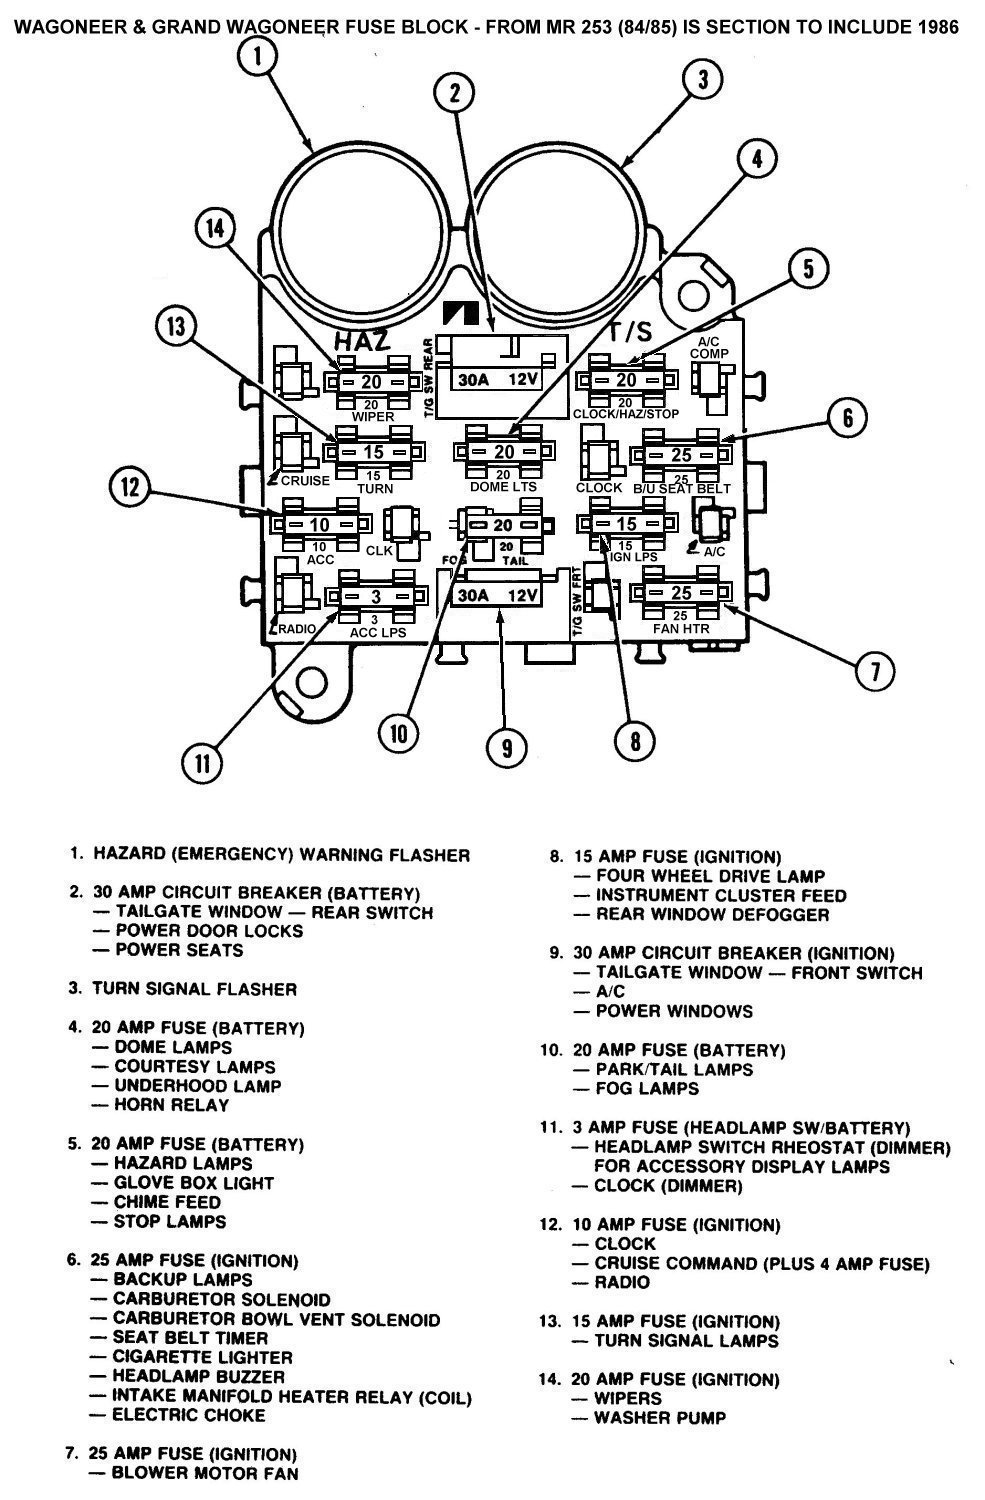 1975 Cj5 Fuse Box Diagram Another Blog About Wiring Nova Tom Oljeep Collins Fsj Page Rh Com Jeep Block 1977